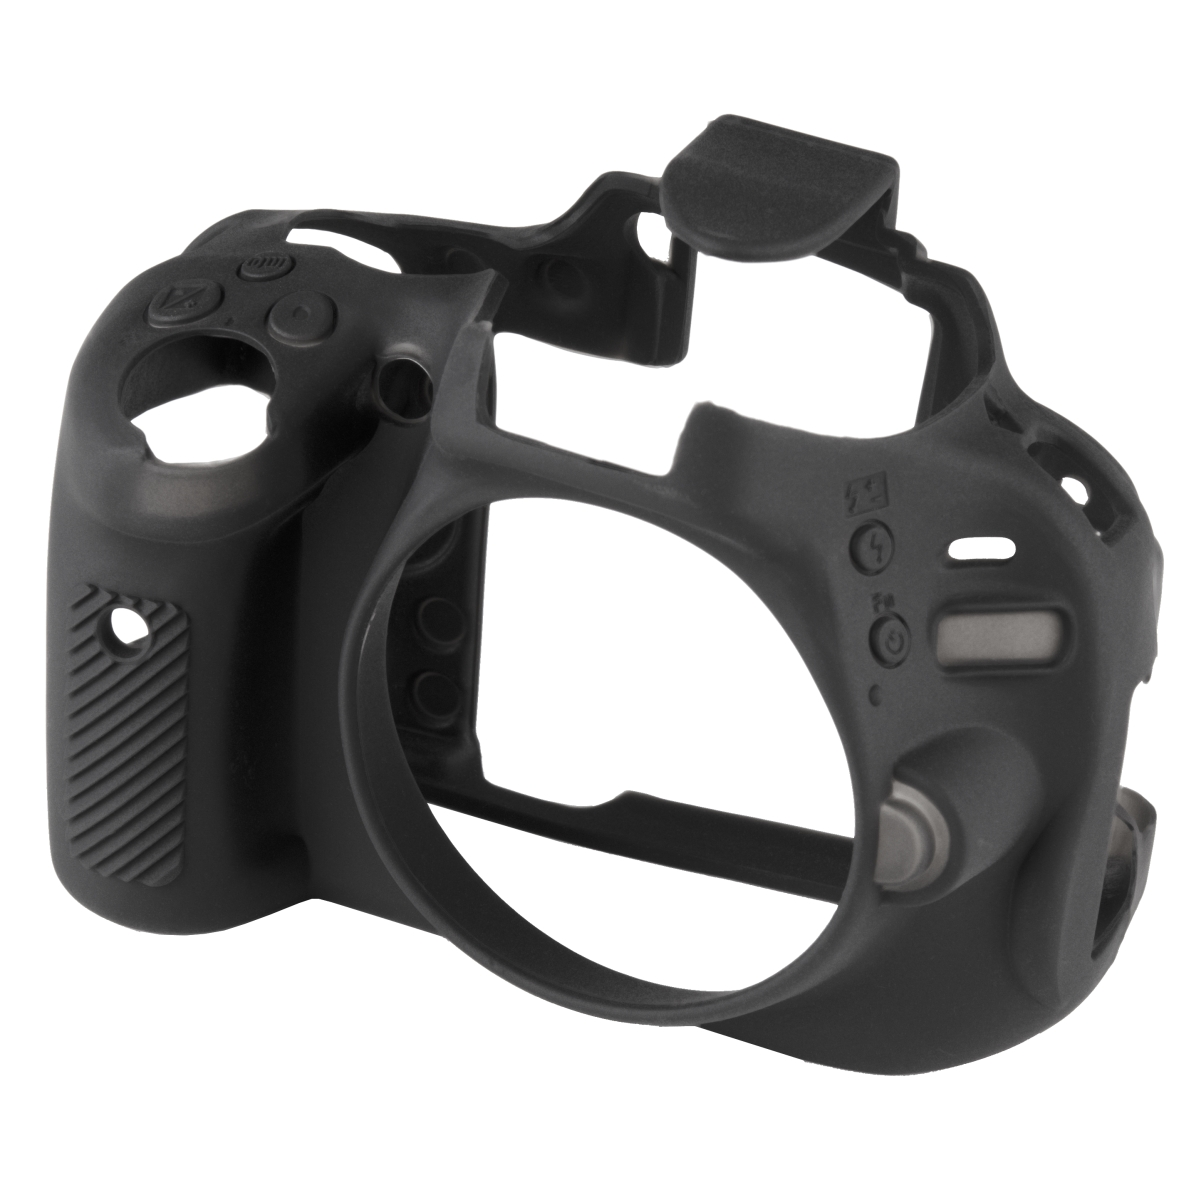 Walimex pro easyCover for Nikon D5100